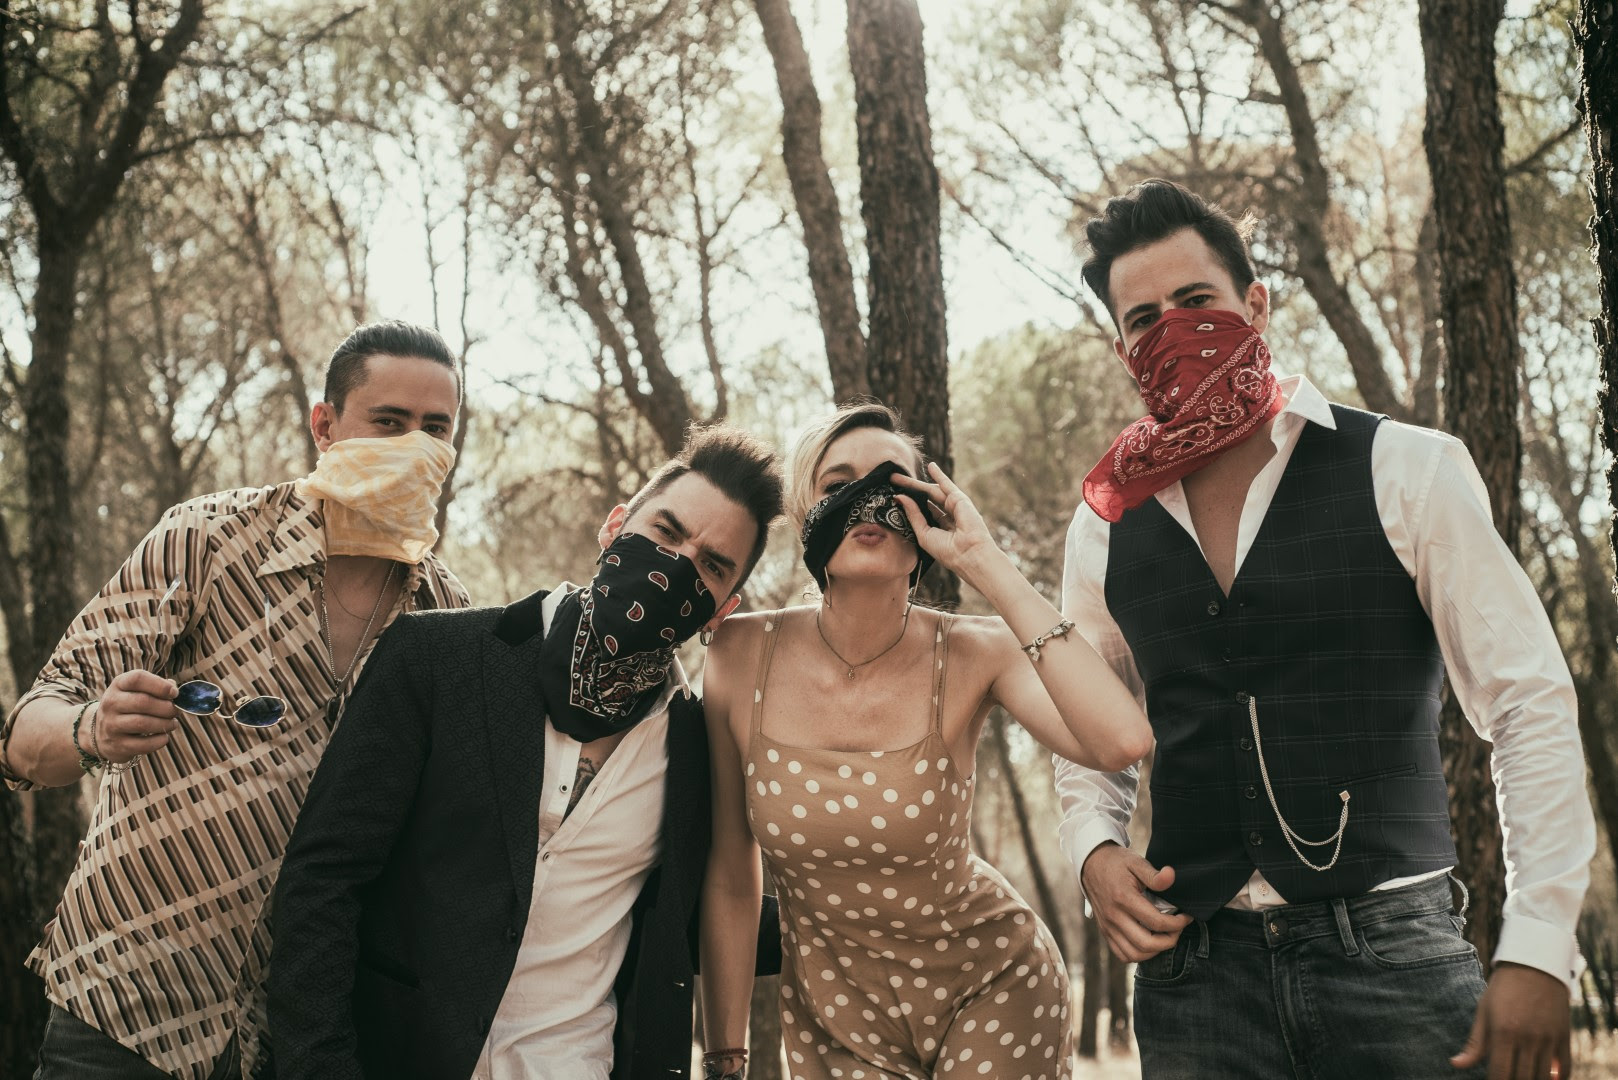 Jenny and The Mexicats cuentan que estuvieron de marcha por Madrid